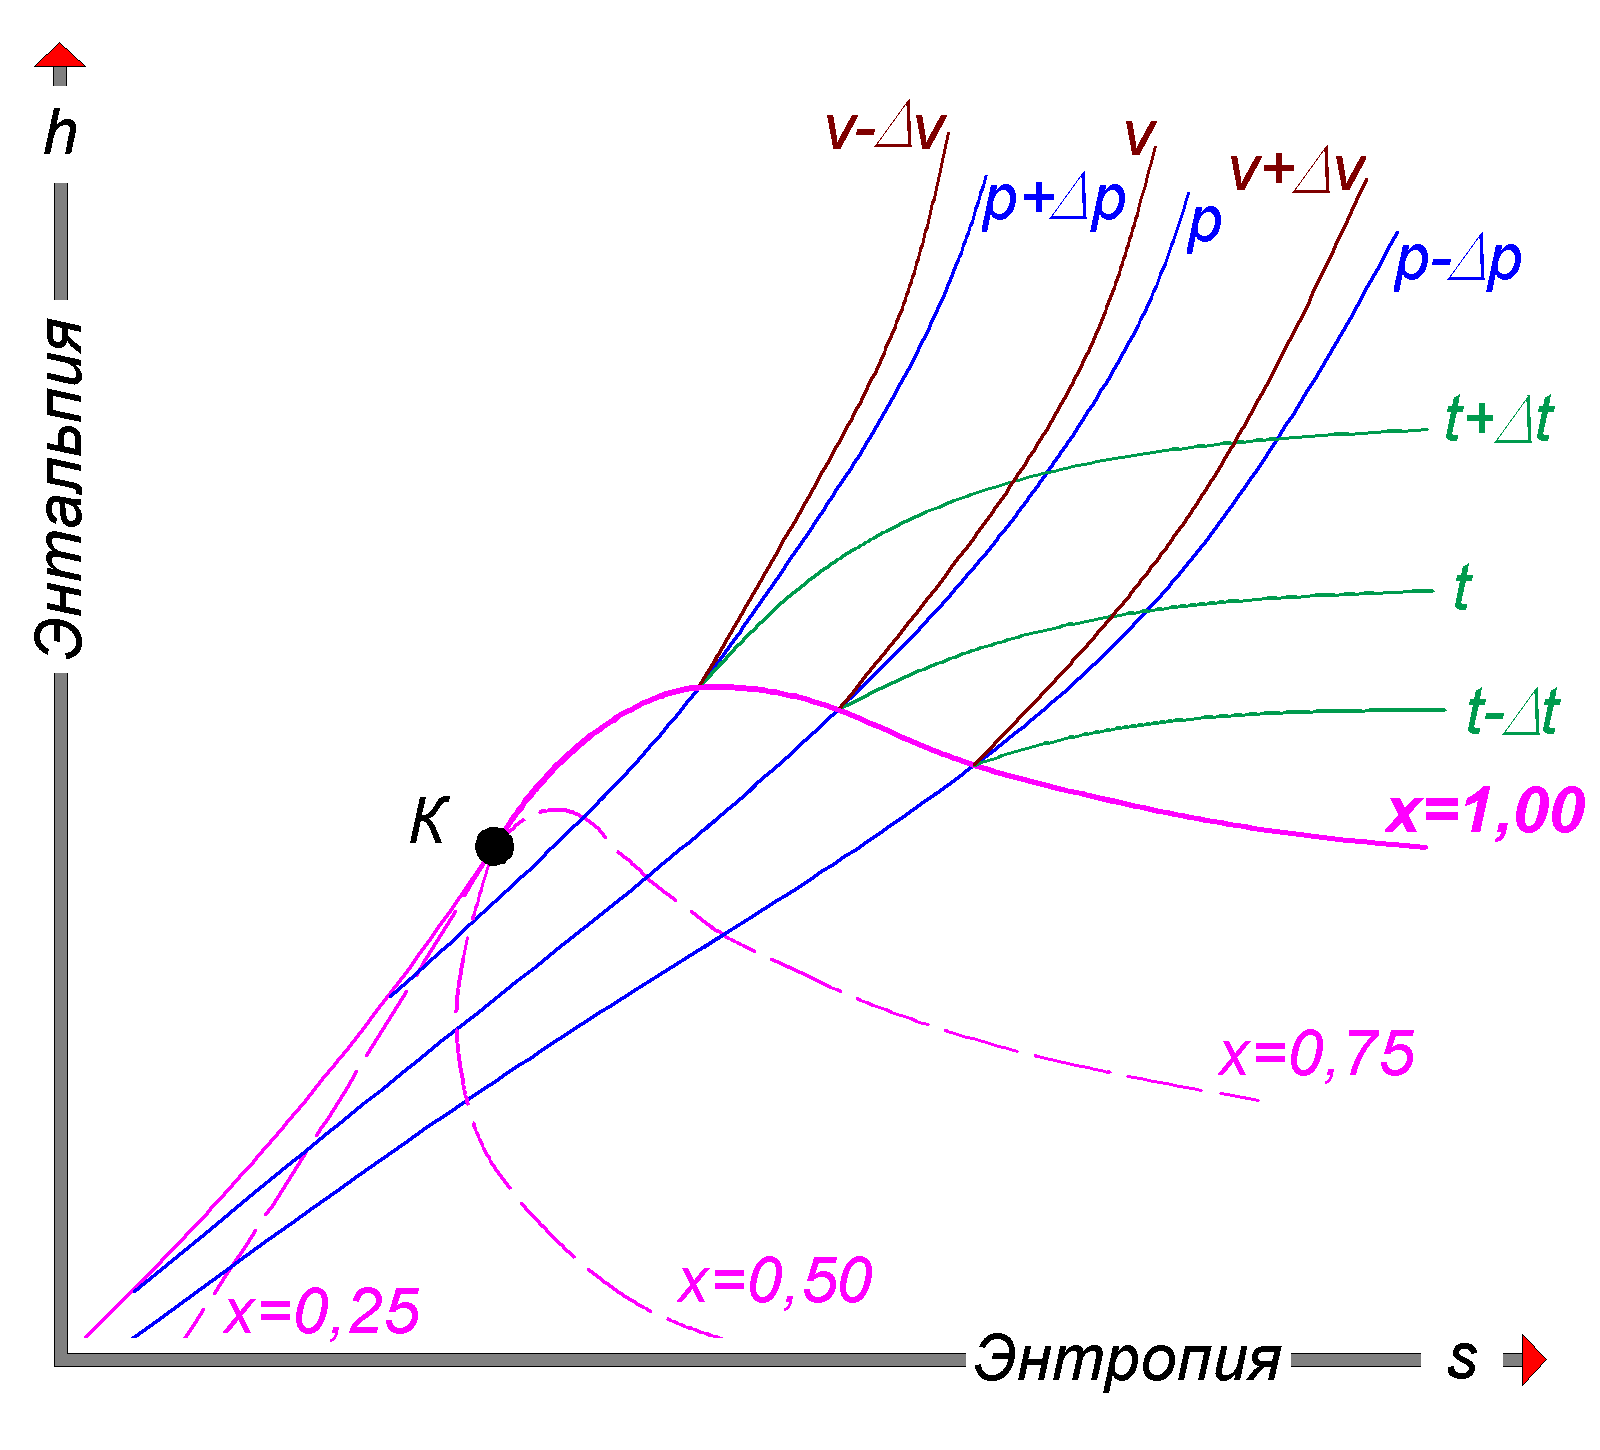 a research on enthalpies and entropies of features on a heat pump